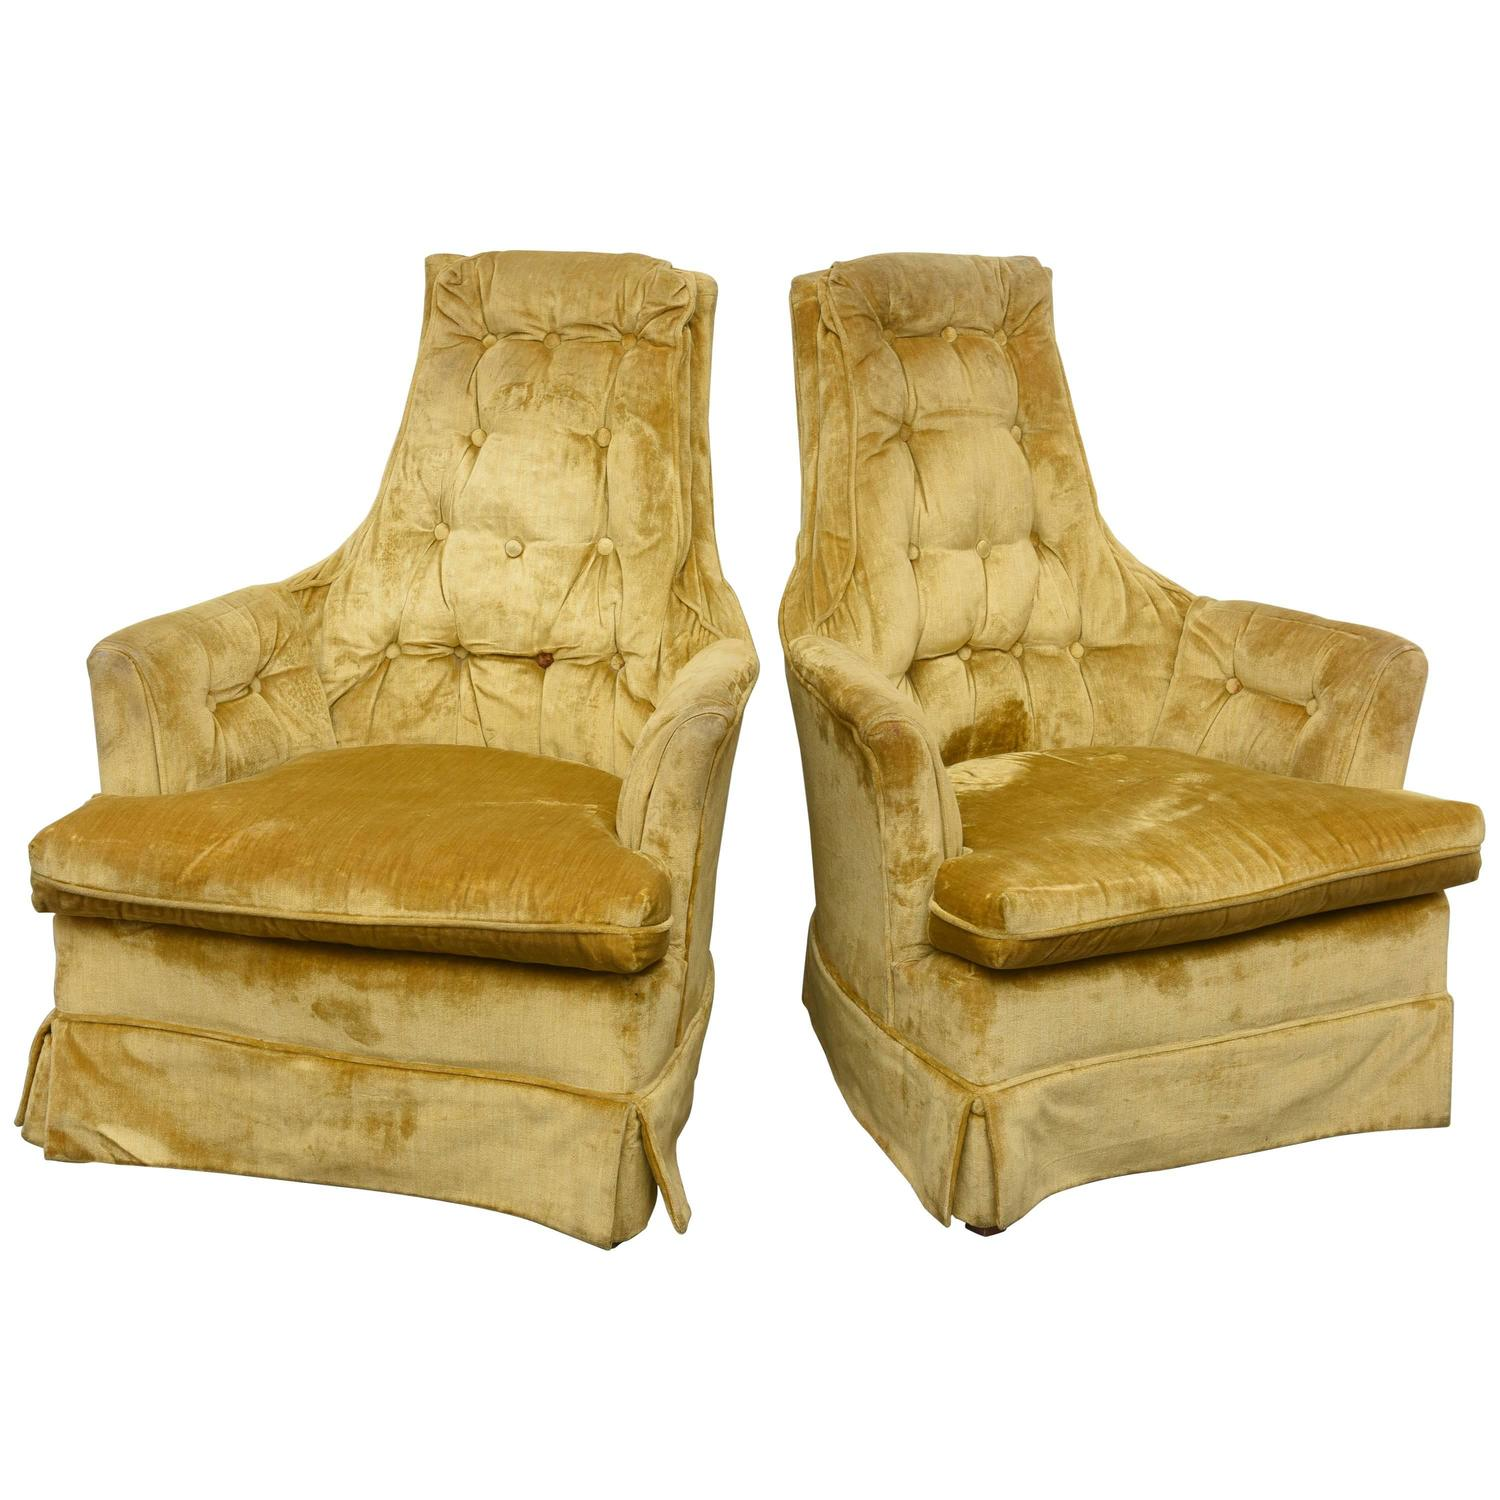 high back tufted chair sex glider swivel rocker lounge chairs 1960s usa for sale at 1stdibs